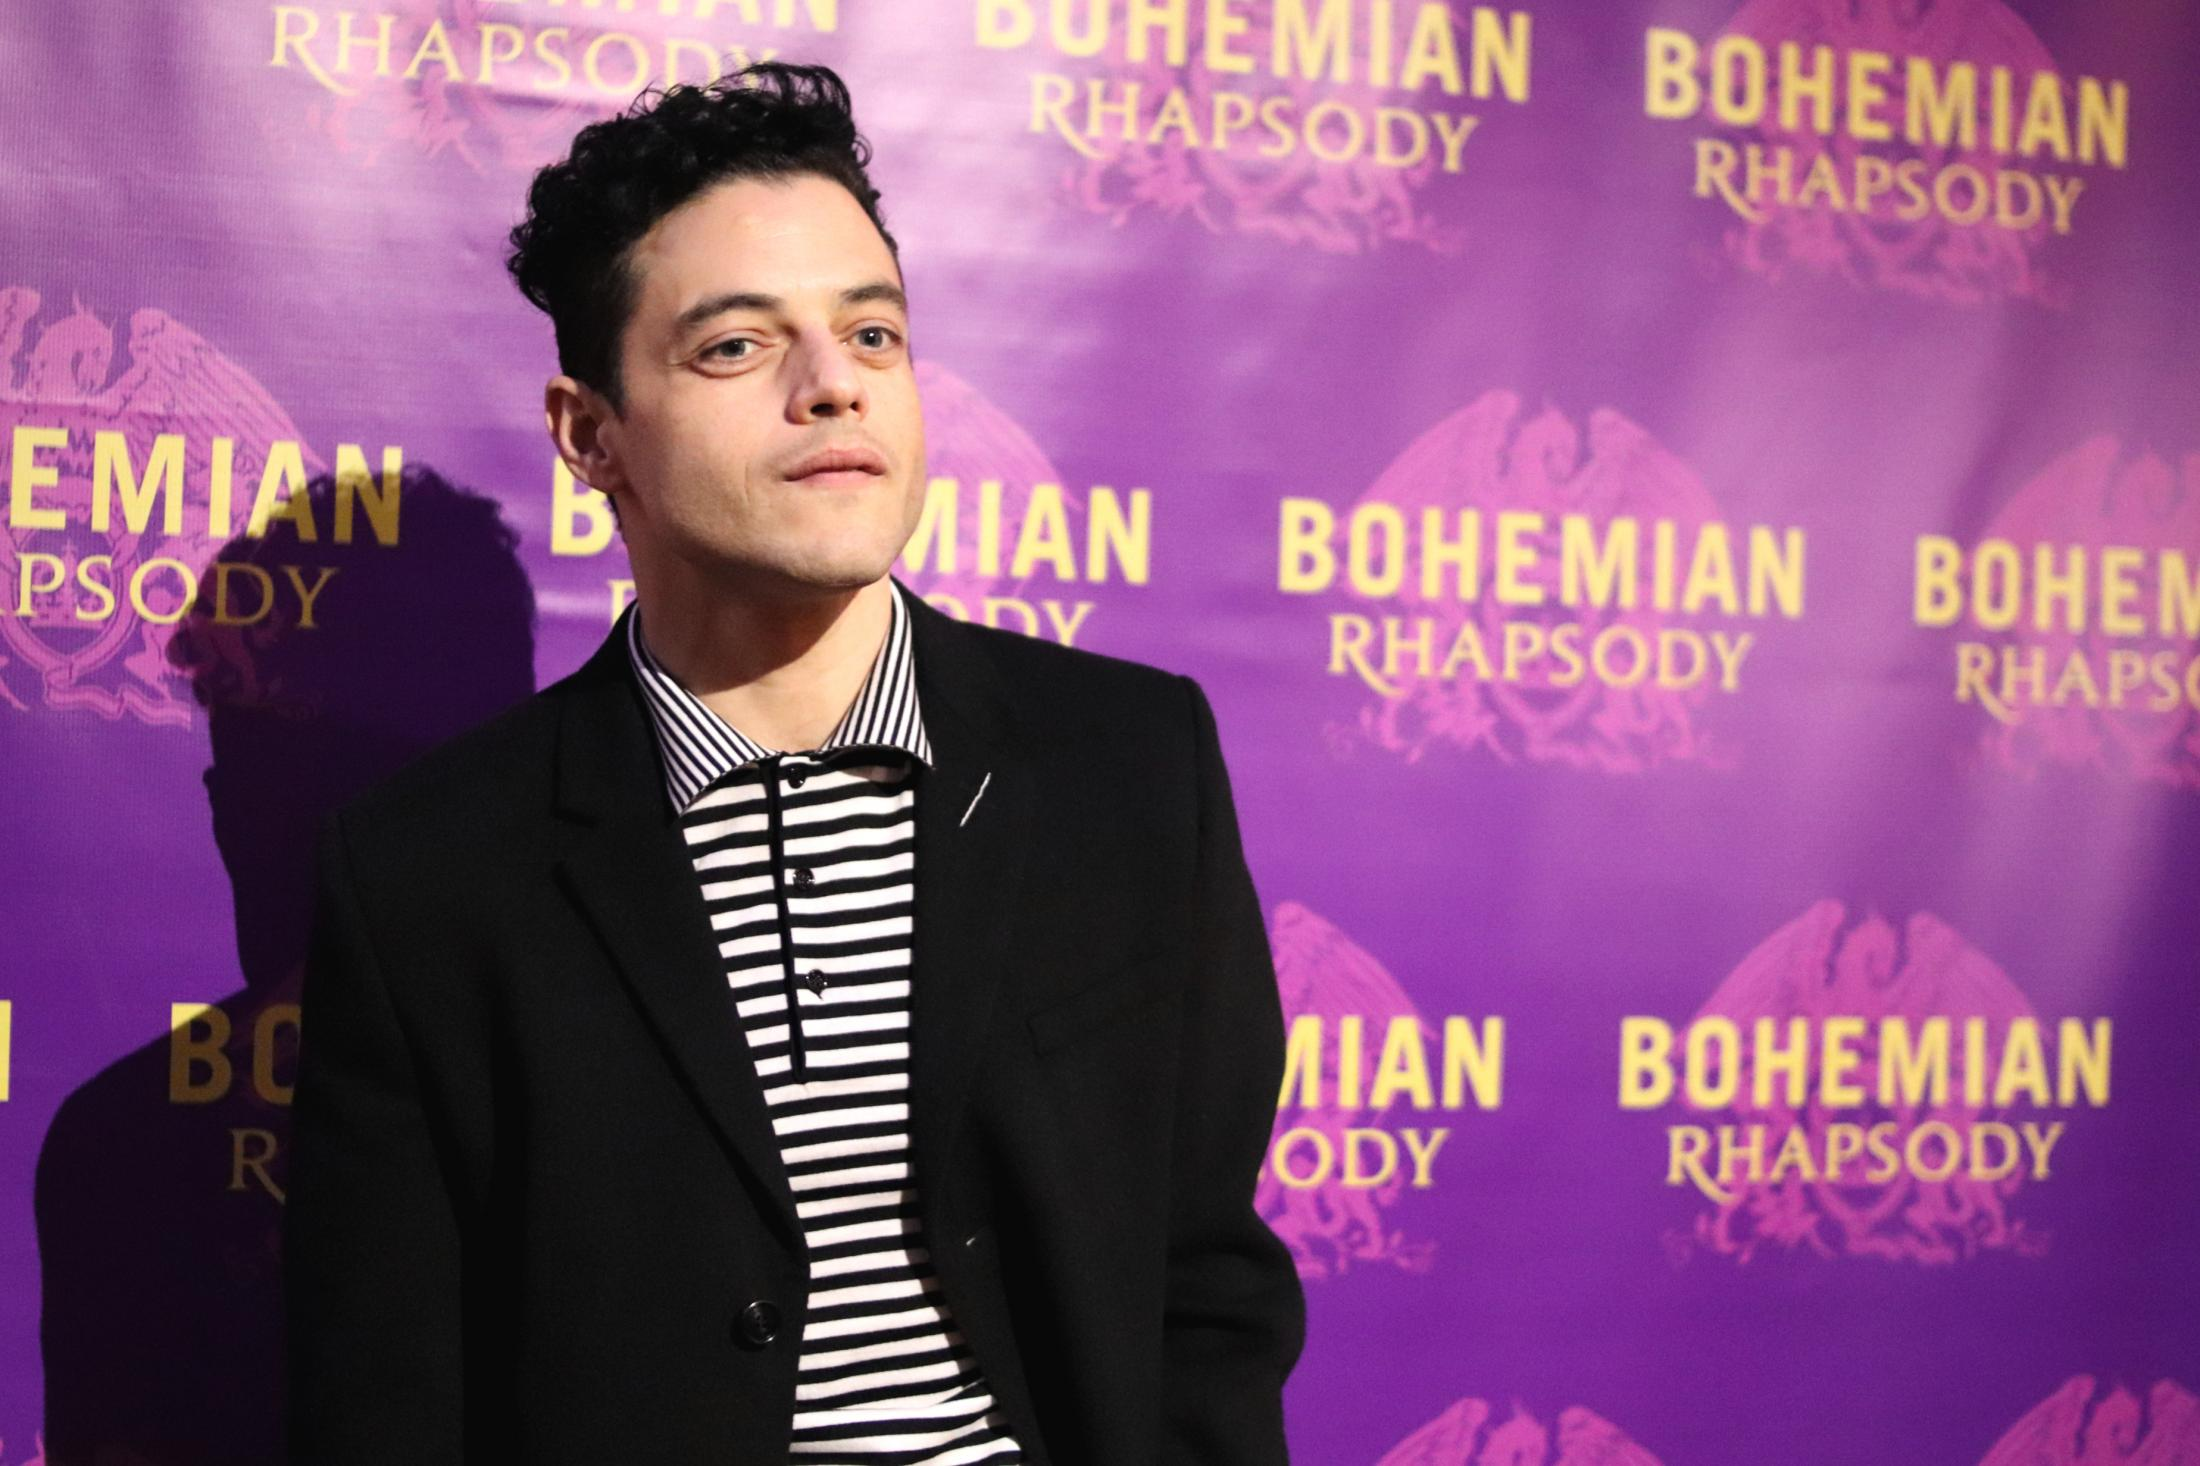 Rami Malek arrives at the red carpet for the Boston premiere of Bohemian Rhapsody.